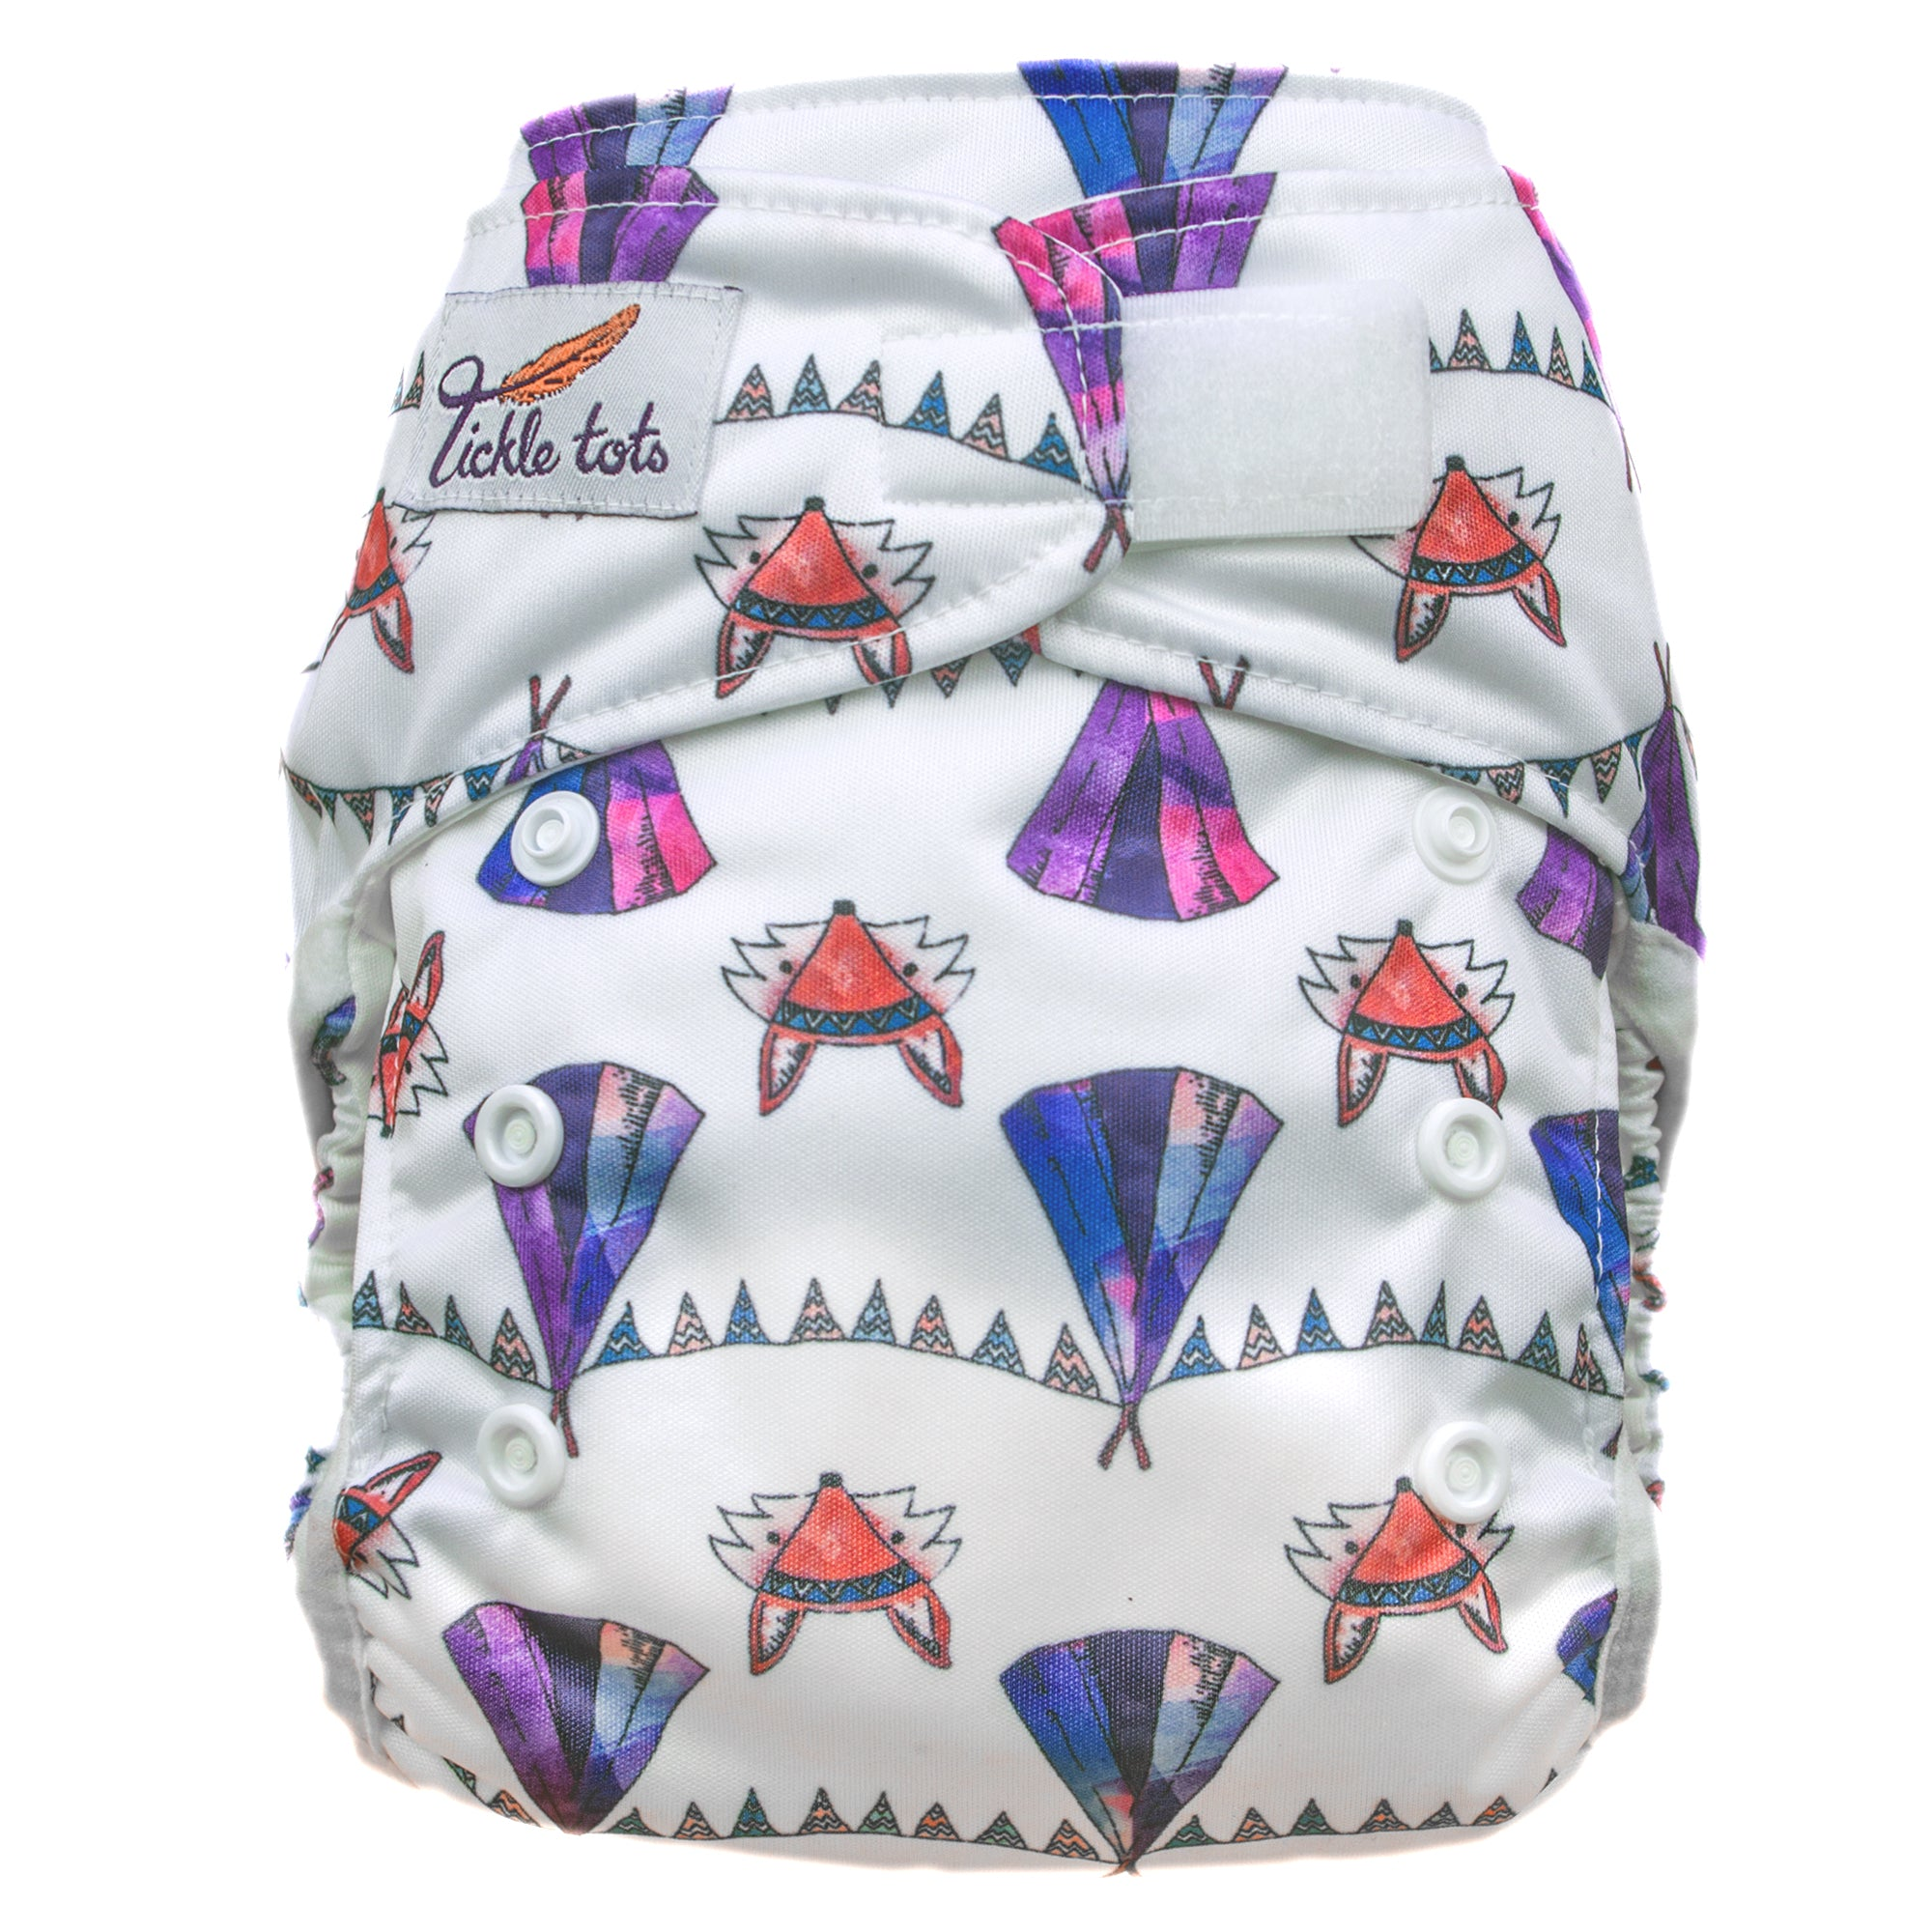 Tickle Tots 2's Nappy - Camping - Smallkind